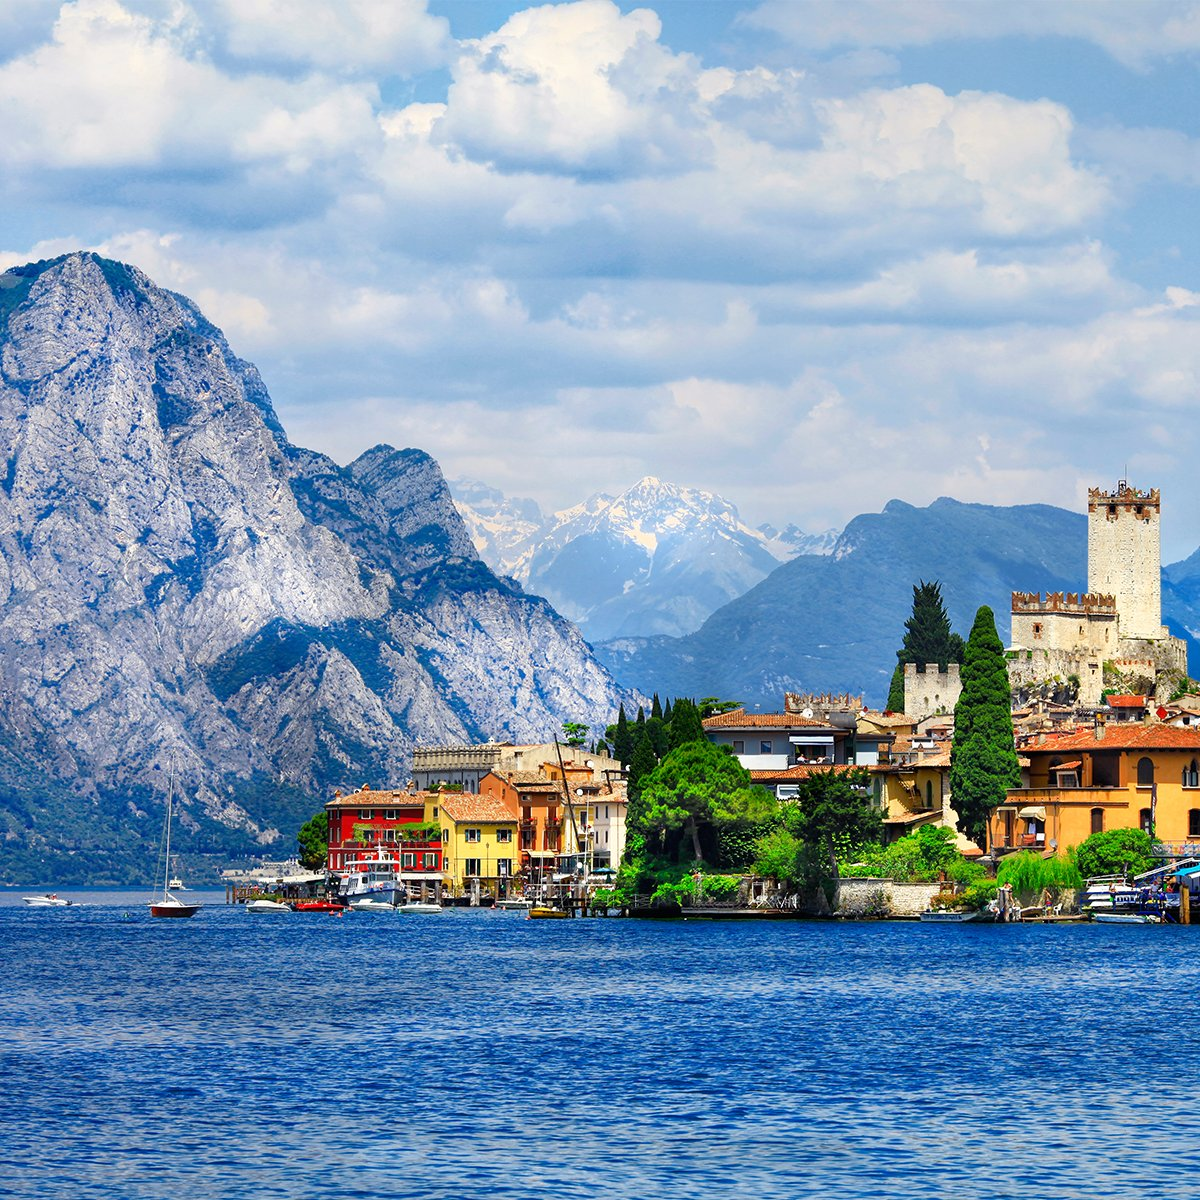 Relax & explore Lake Garda with Newmarket Holidays direct from Aberdeen. Find our more: